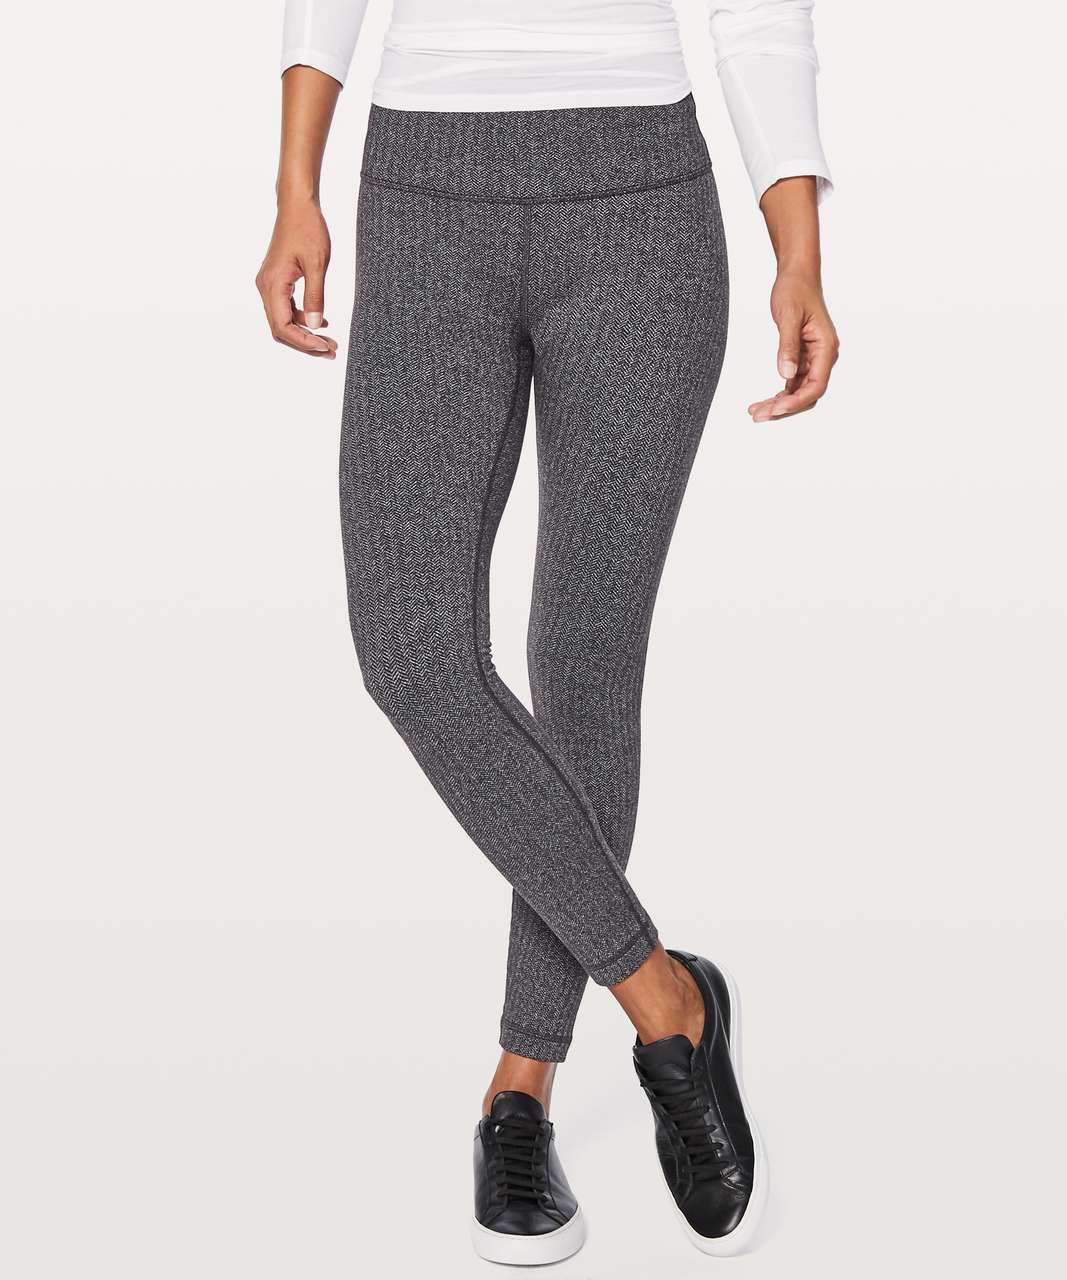 bdada2a01b Lululemon Wunder Under Hi-Rise 7/8 Tight 25